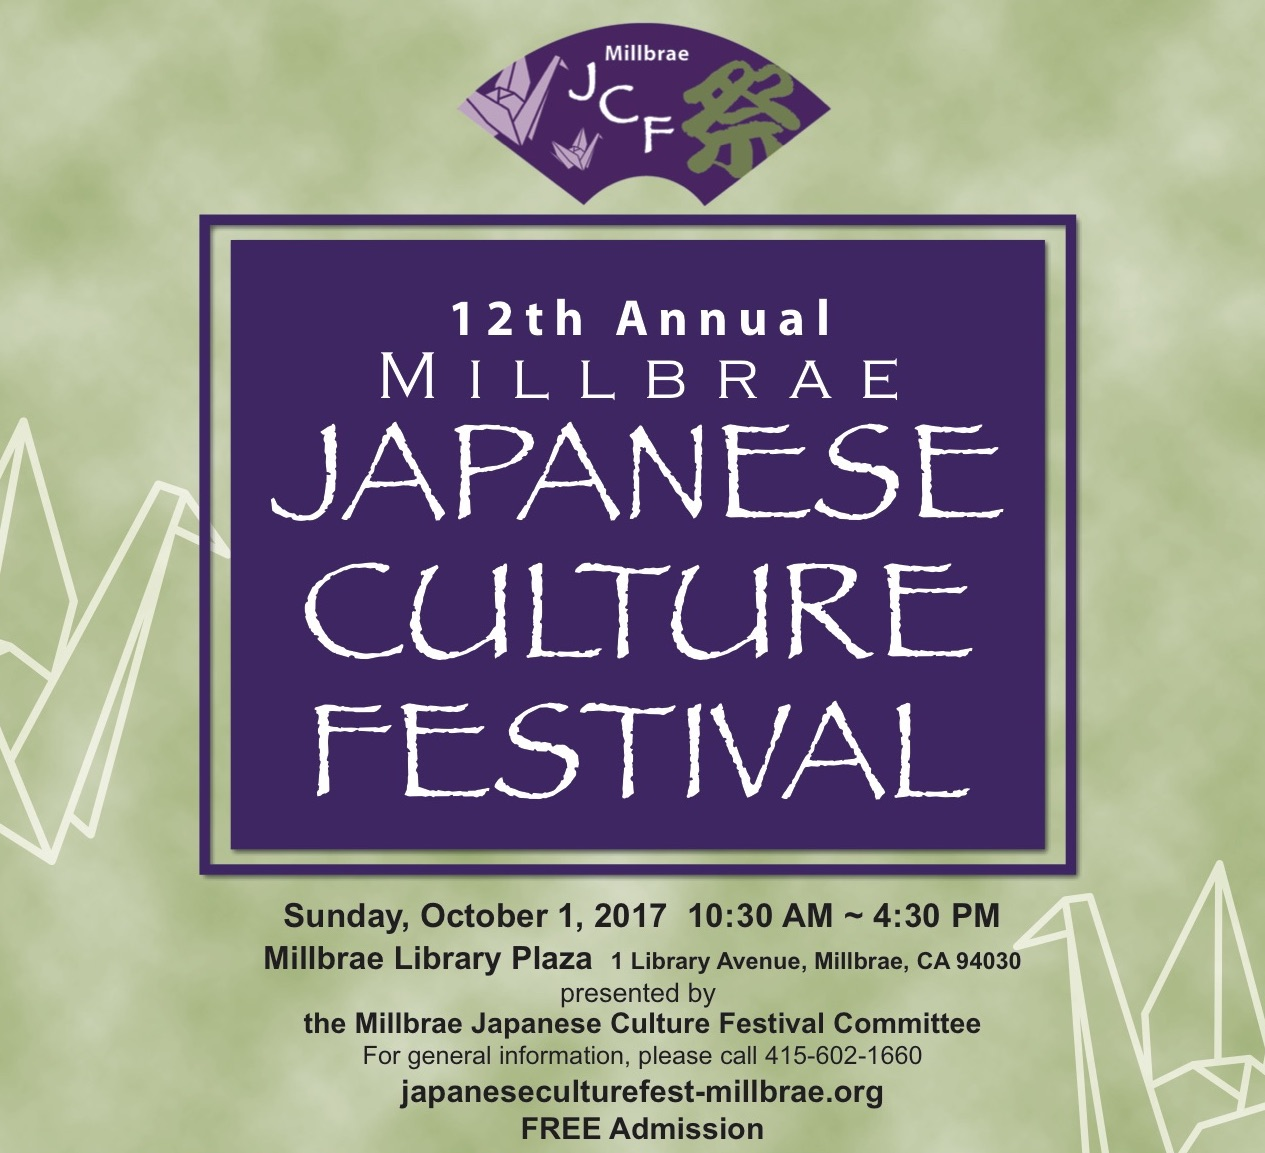 12th Annual Japanese Culture Festival - Sunday, October 1